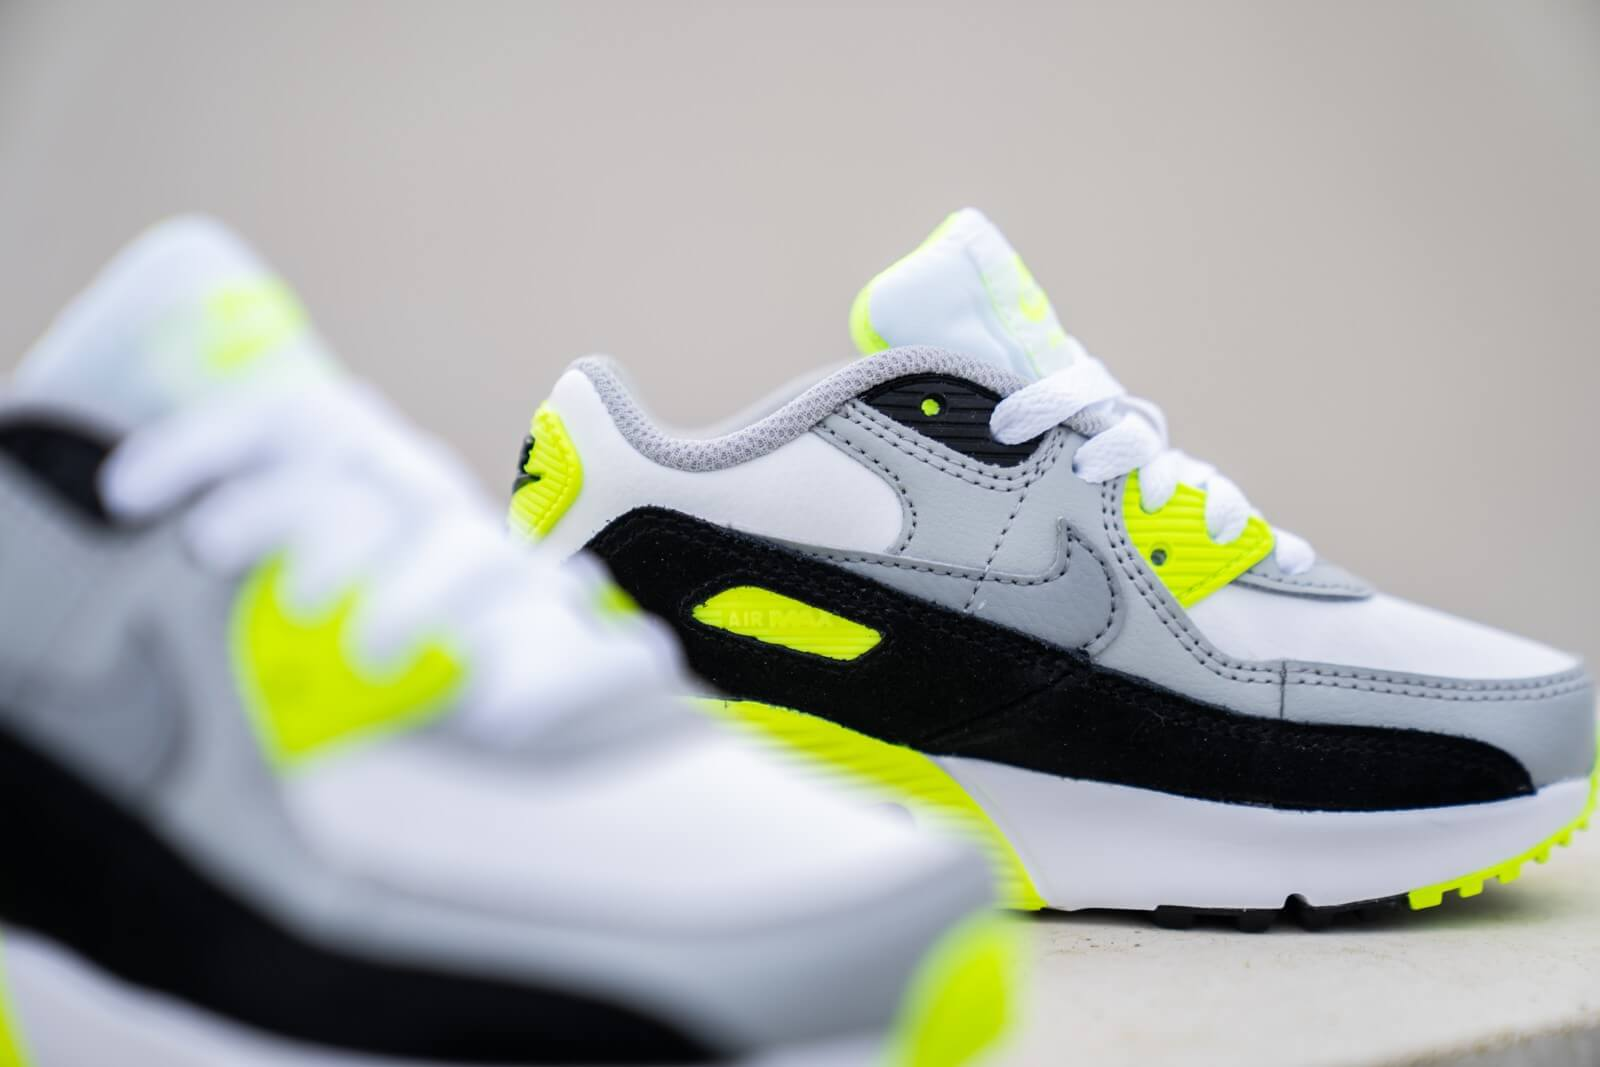 Nike Air Max 90 PS White/Particle Grey-Volt